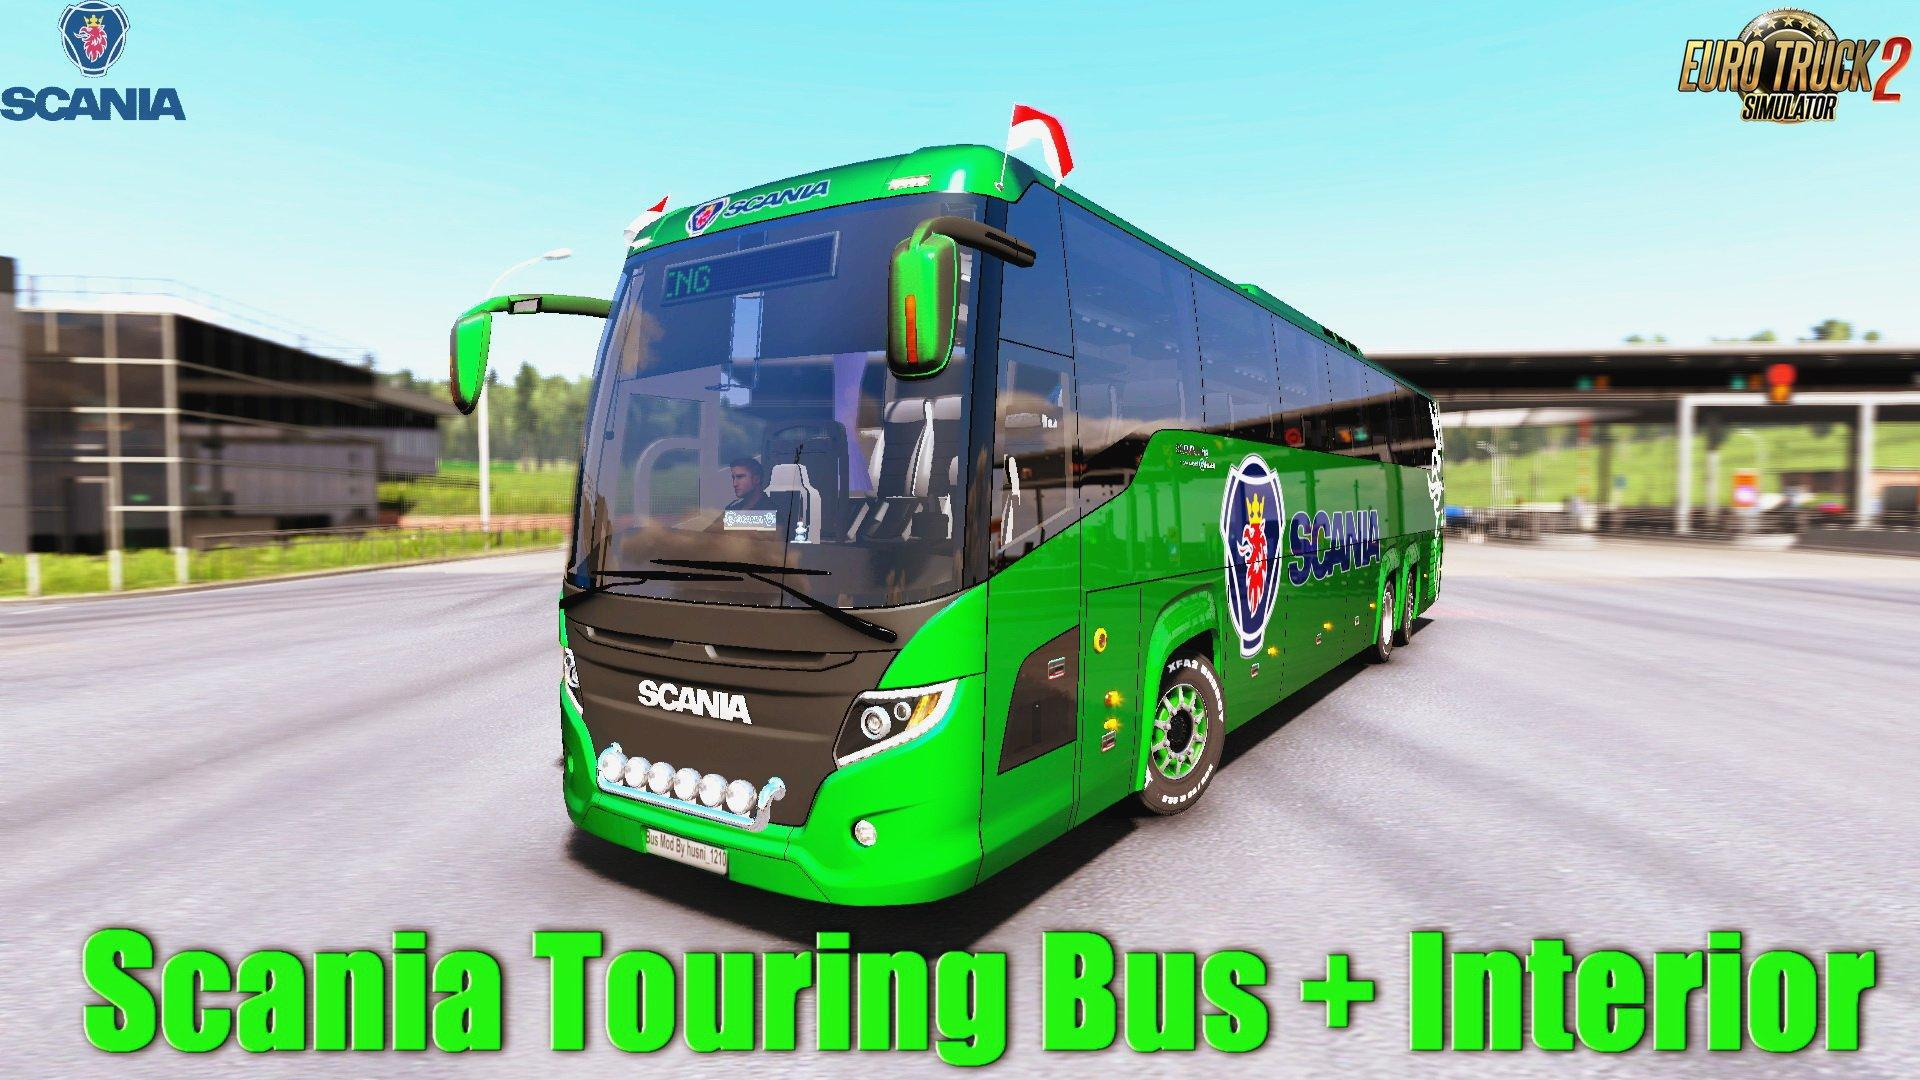 SCANIA TOURING FOR ETS2 1 34 BUS MOD -Euro Truck Simulator 2